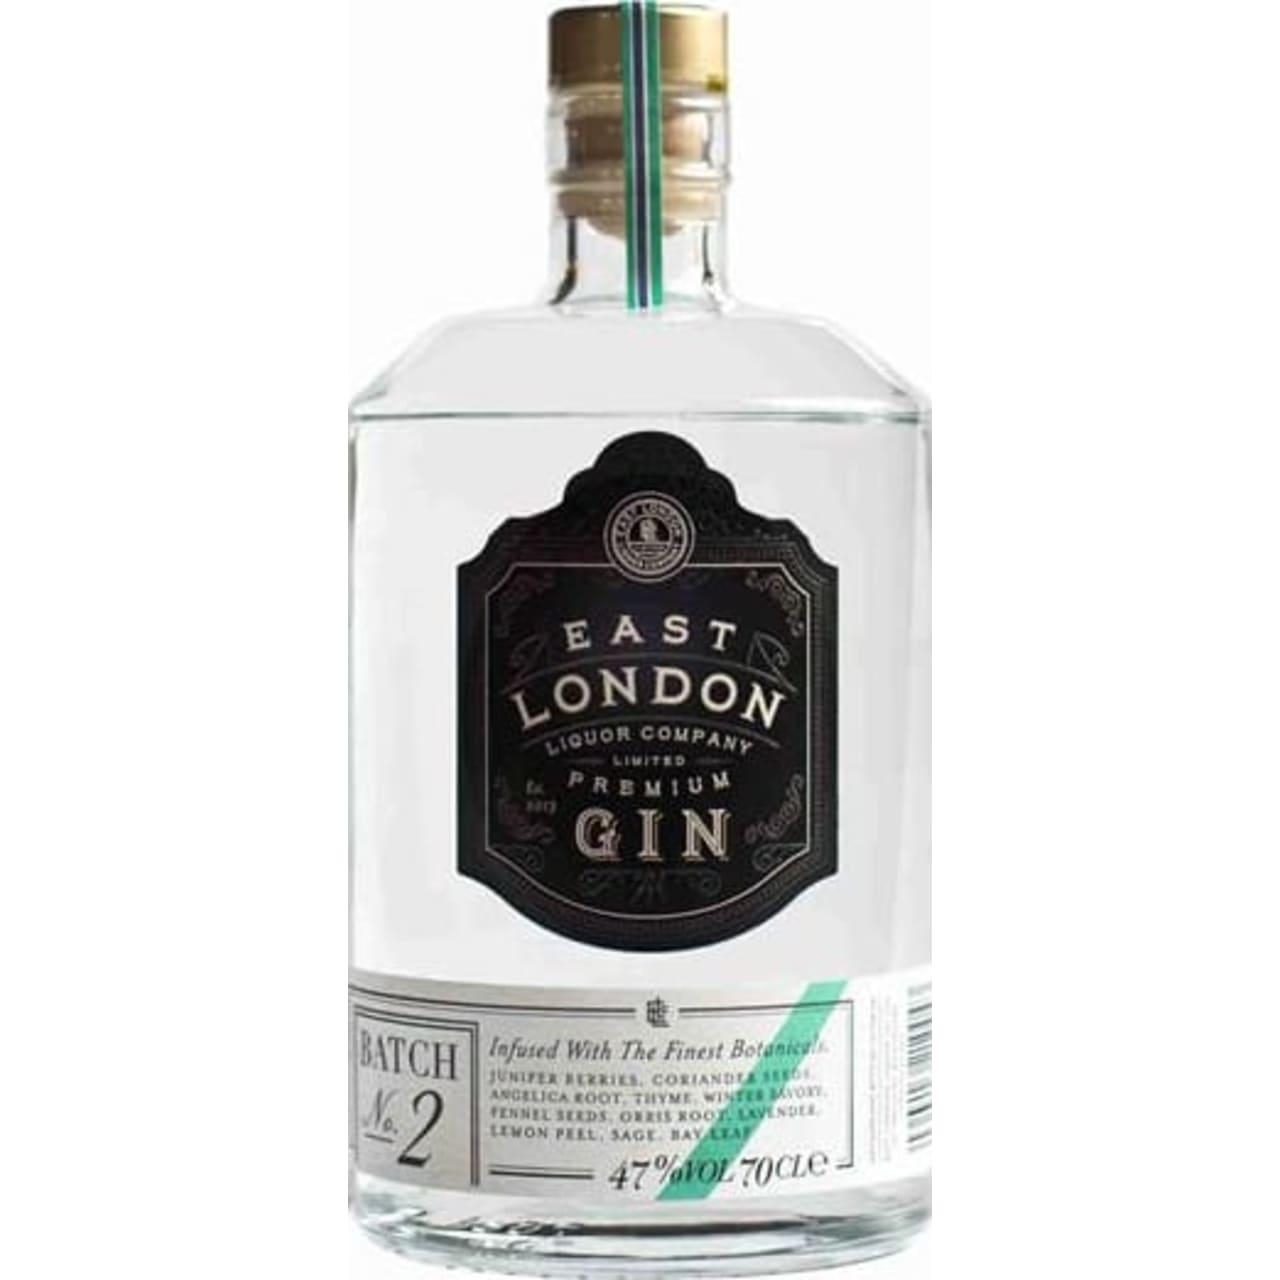 Product Image - East London Liquor Company Premium Gin Batch No.2